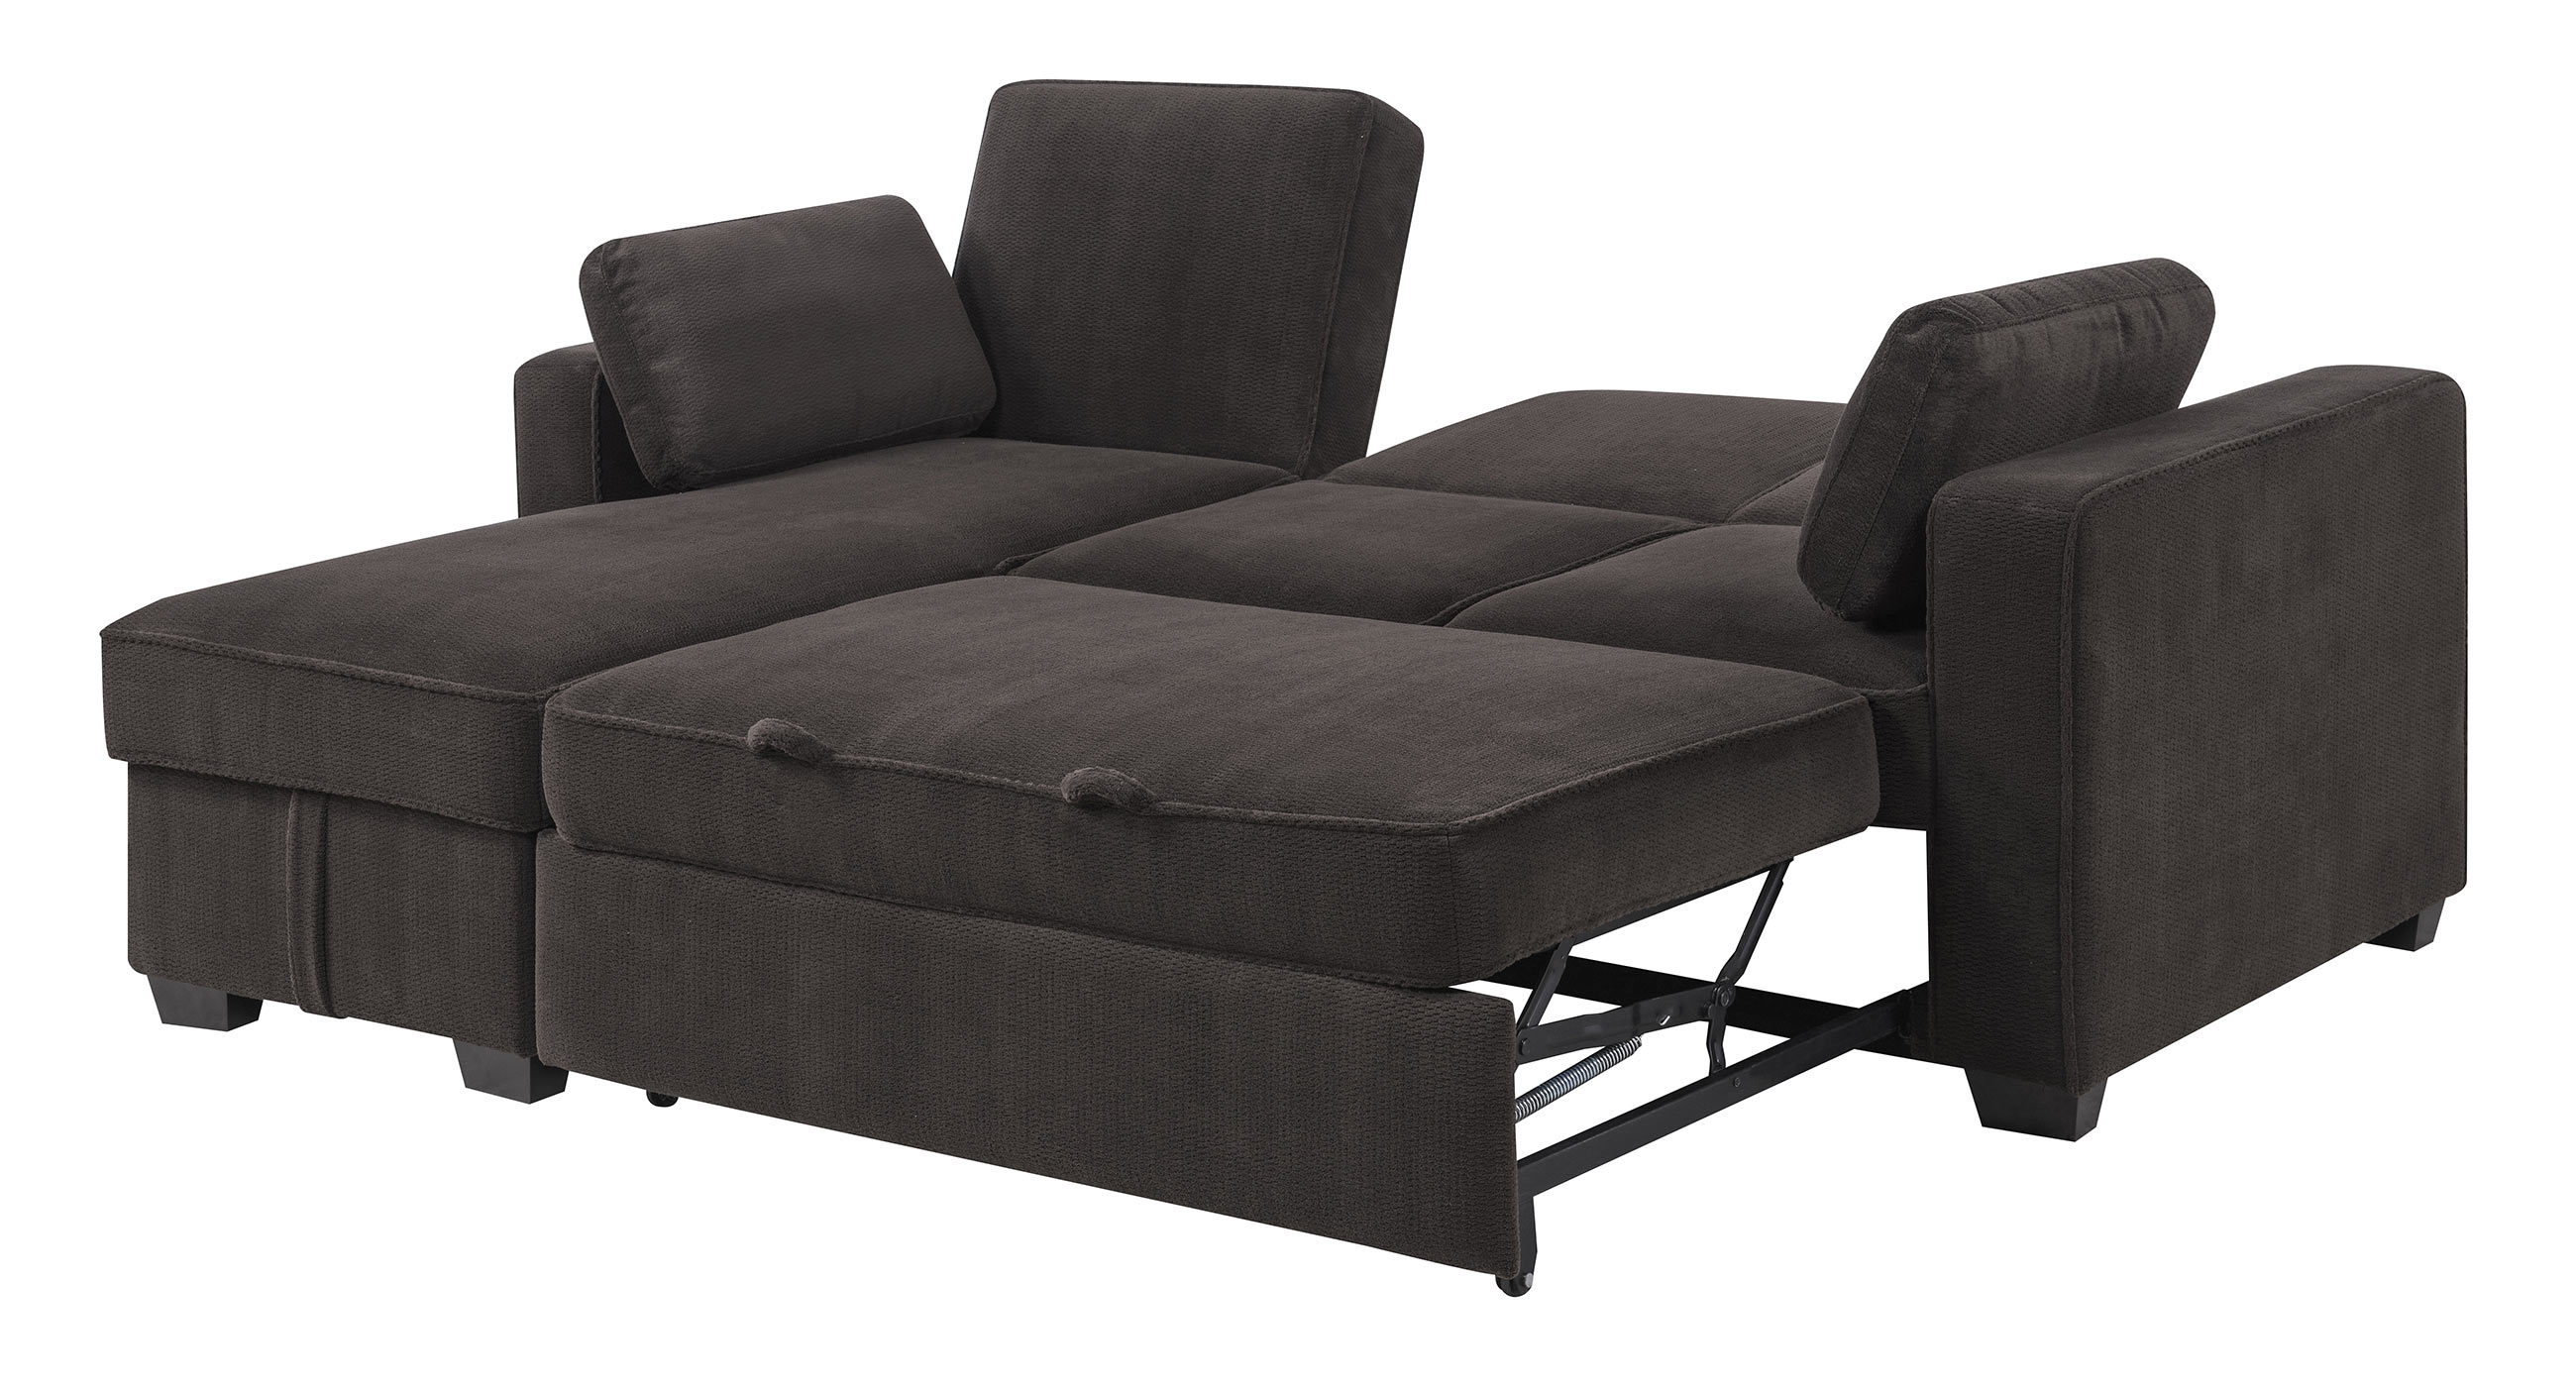 daria serta gray convertible sofa single futons beds chaela sectional dark grey by